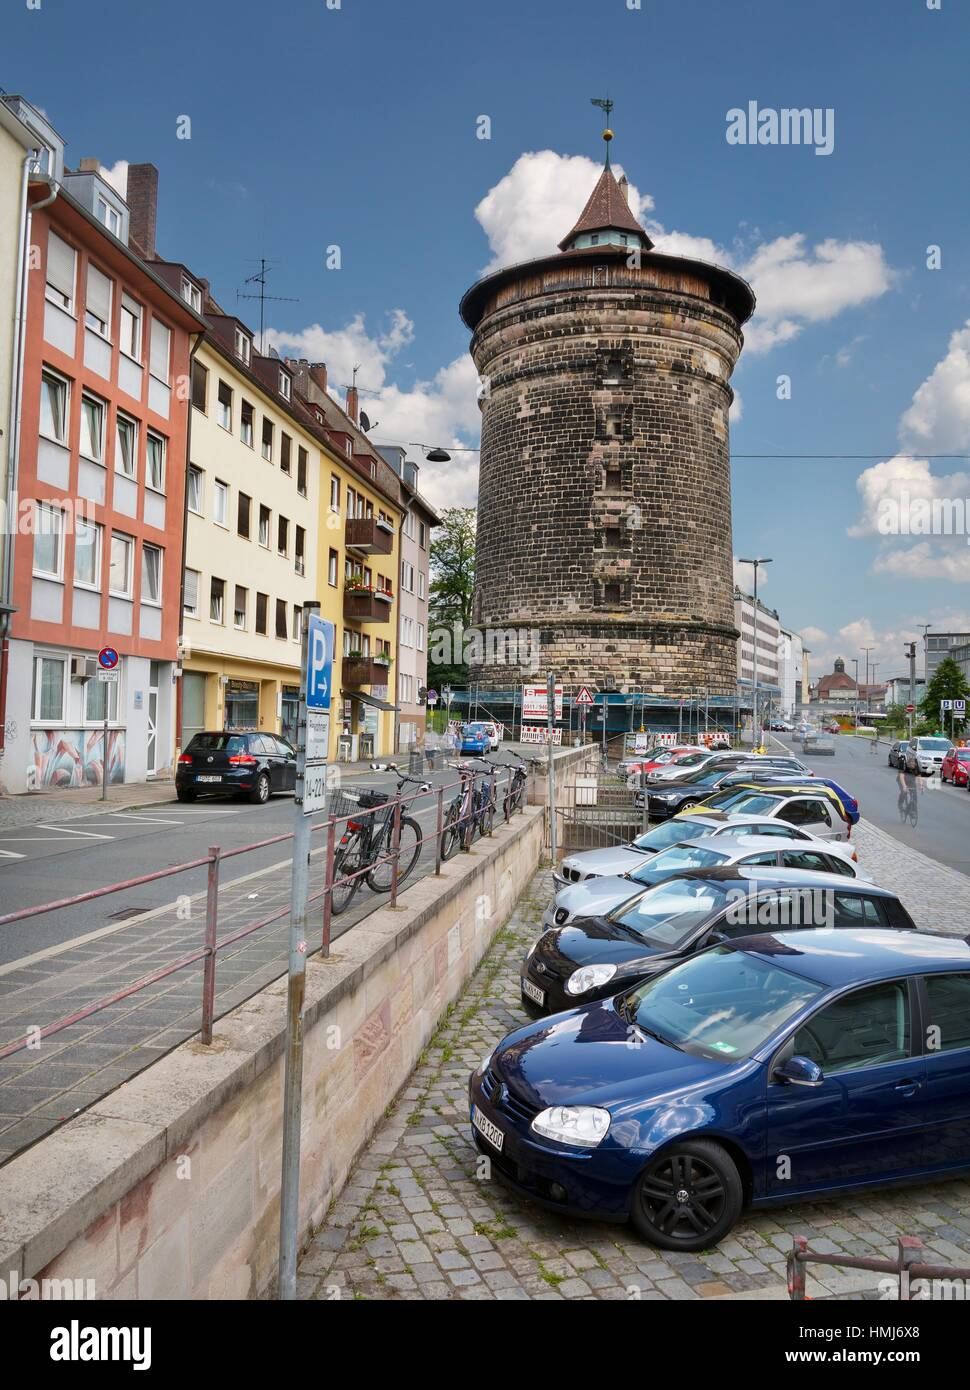 Outside runner Pl. and towerl in Nuremberg. Germany. Europe. - Stock Image